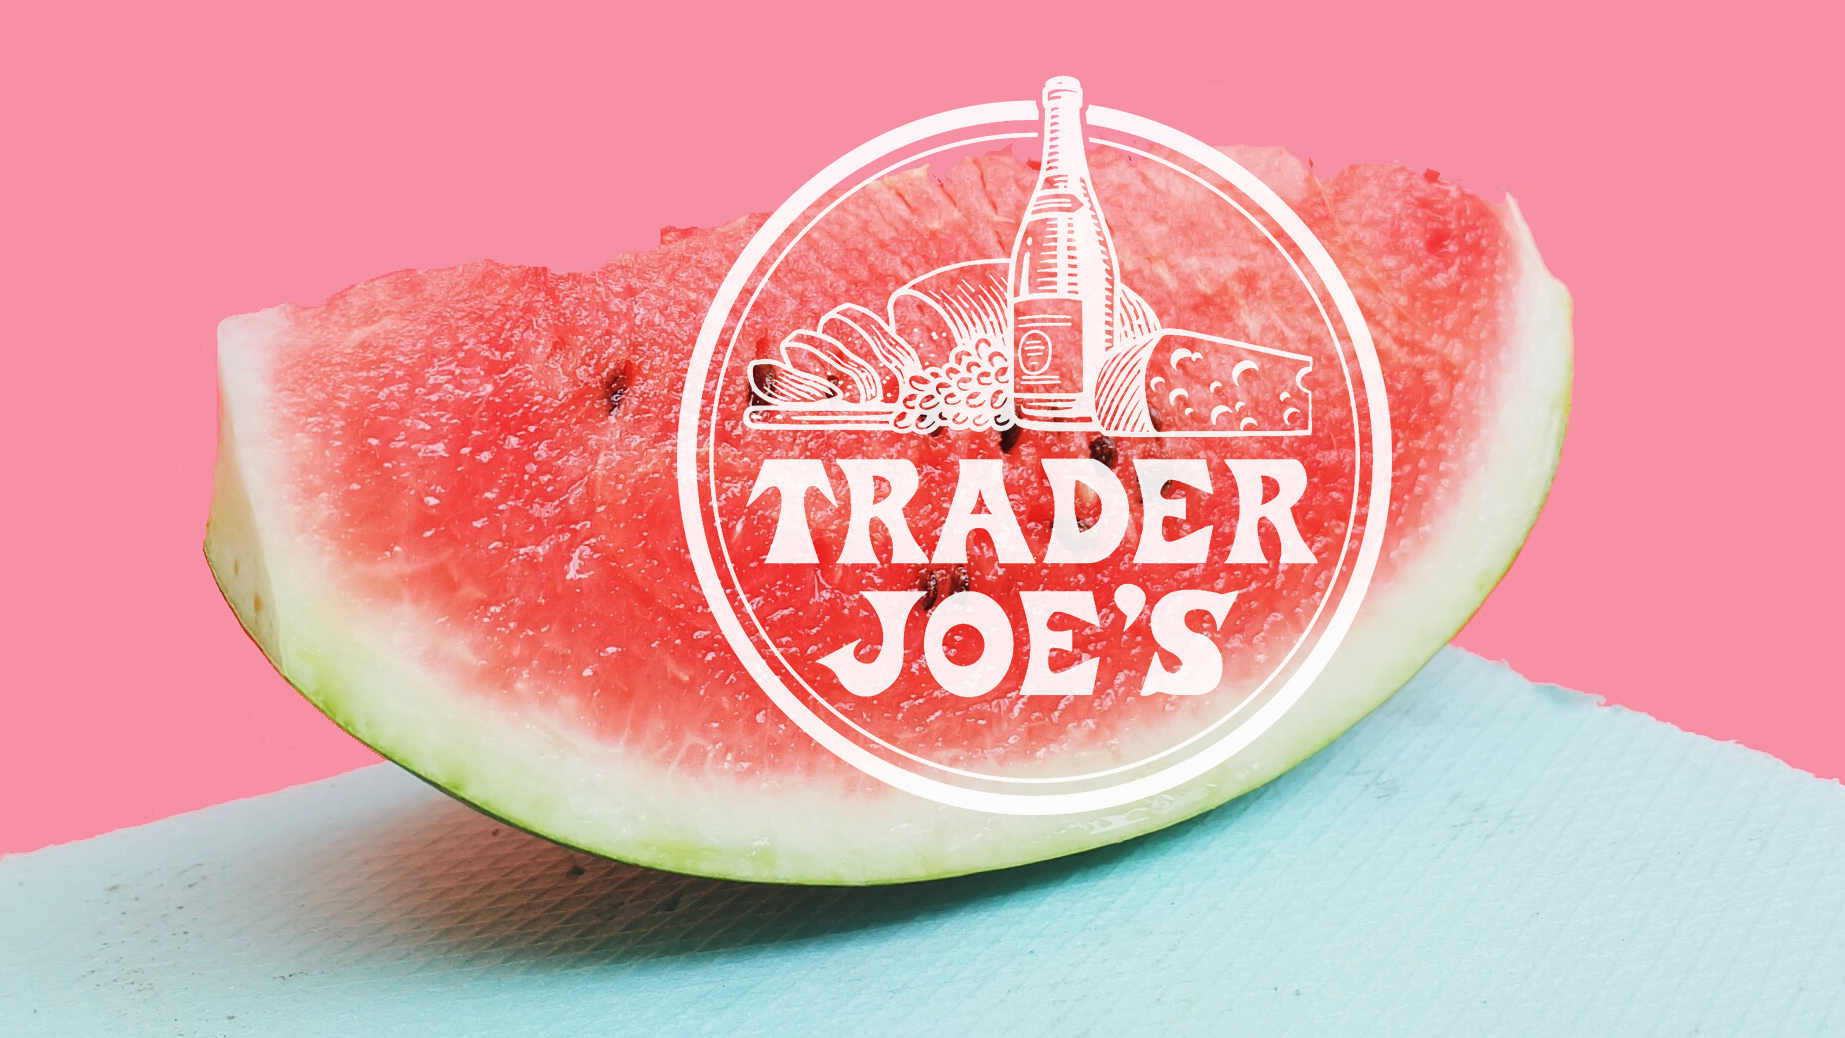 watermelon-trader-joes-products